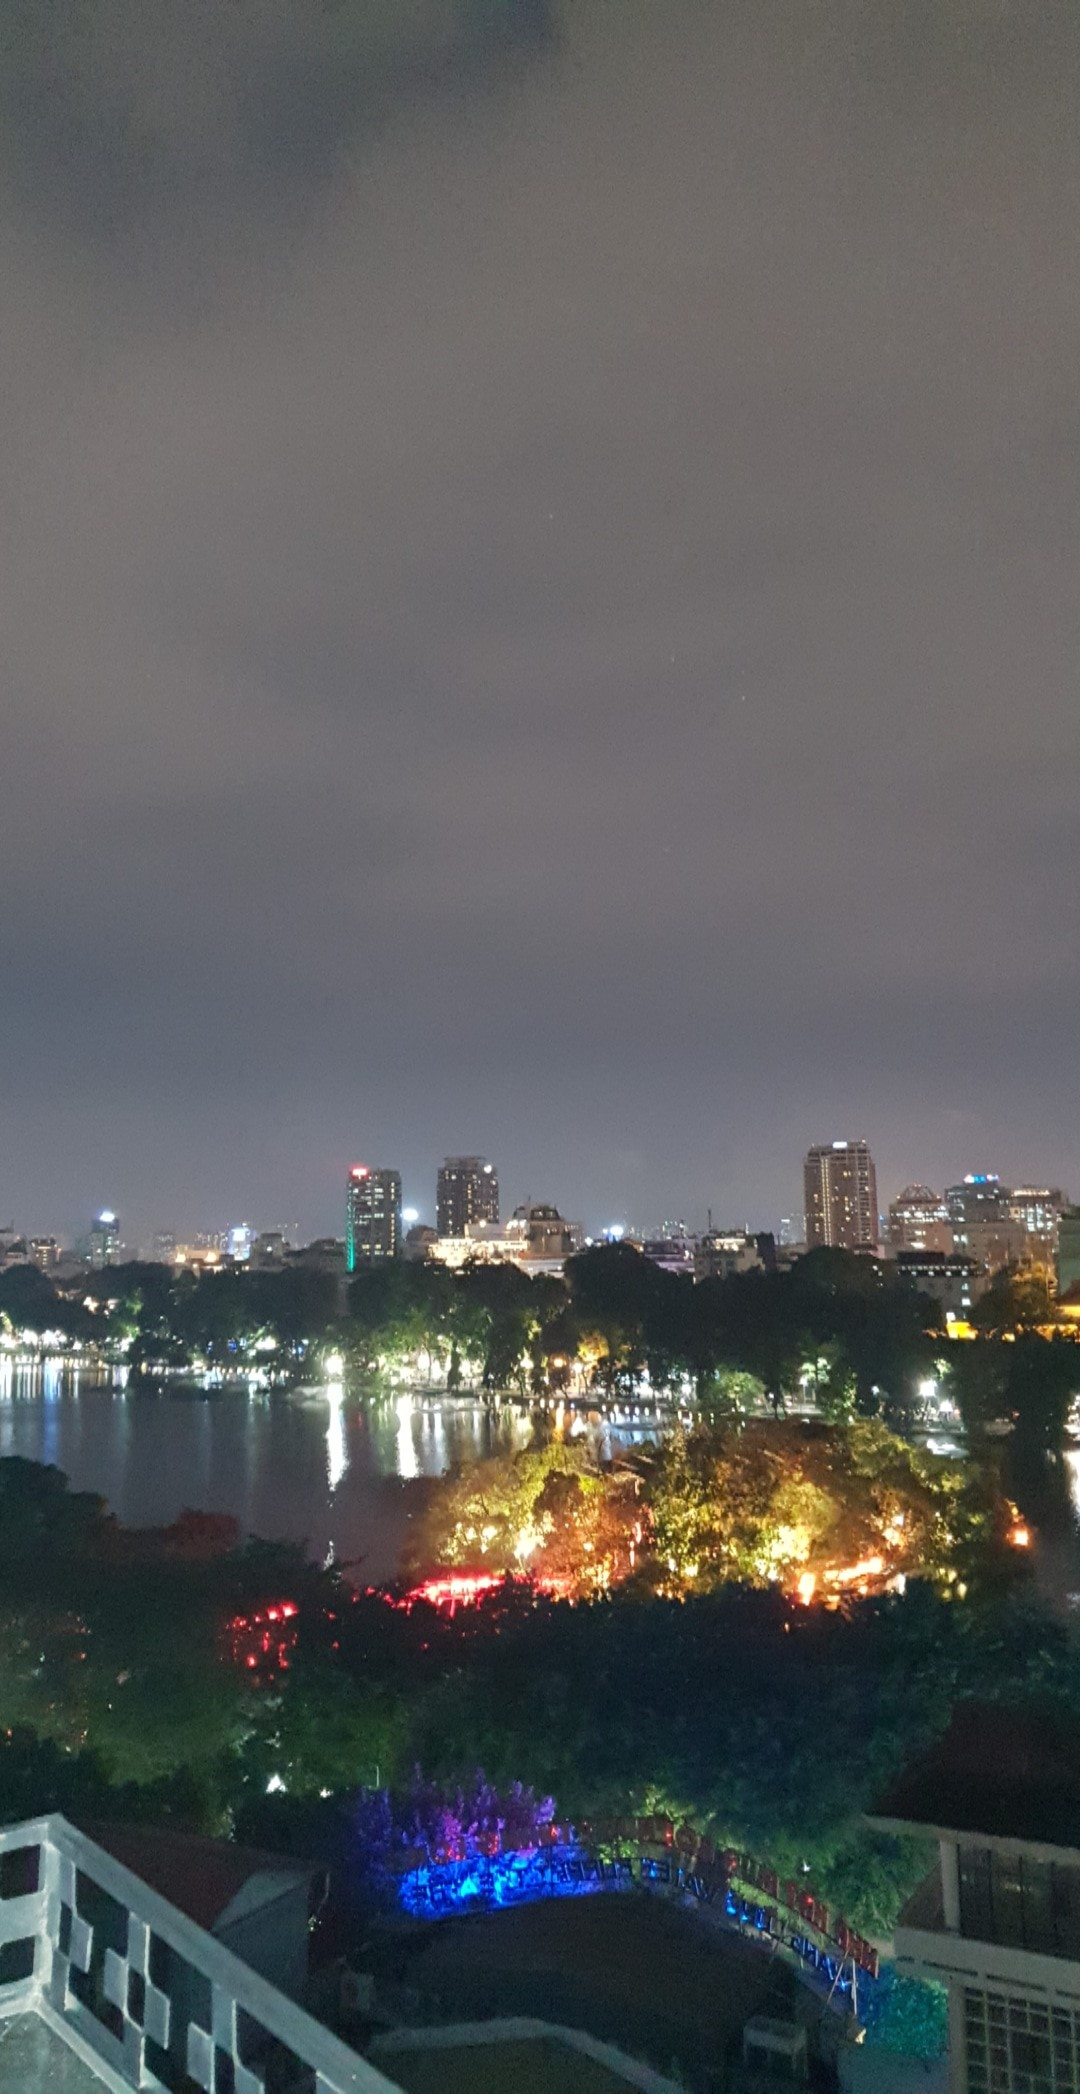 twilight-sky-Bar-hanoi-2019.jpg